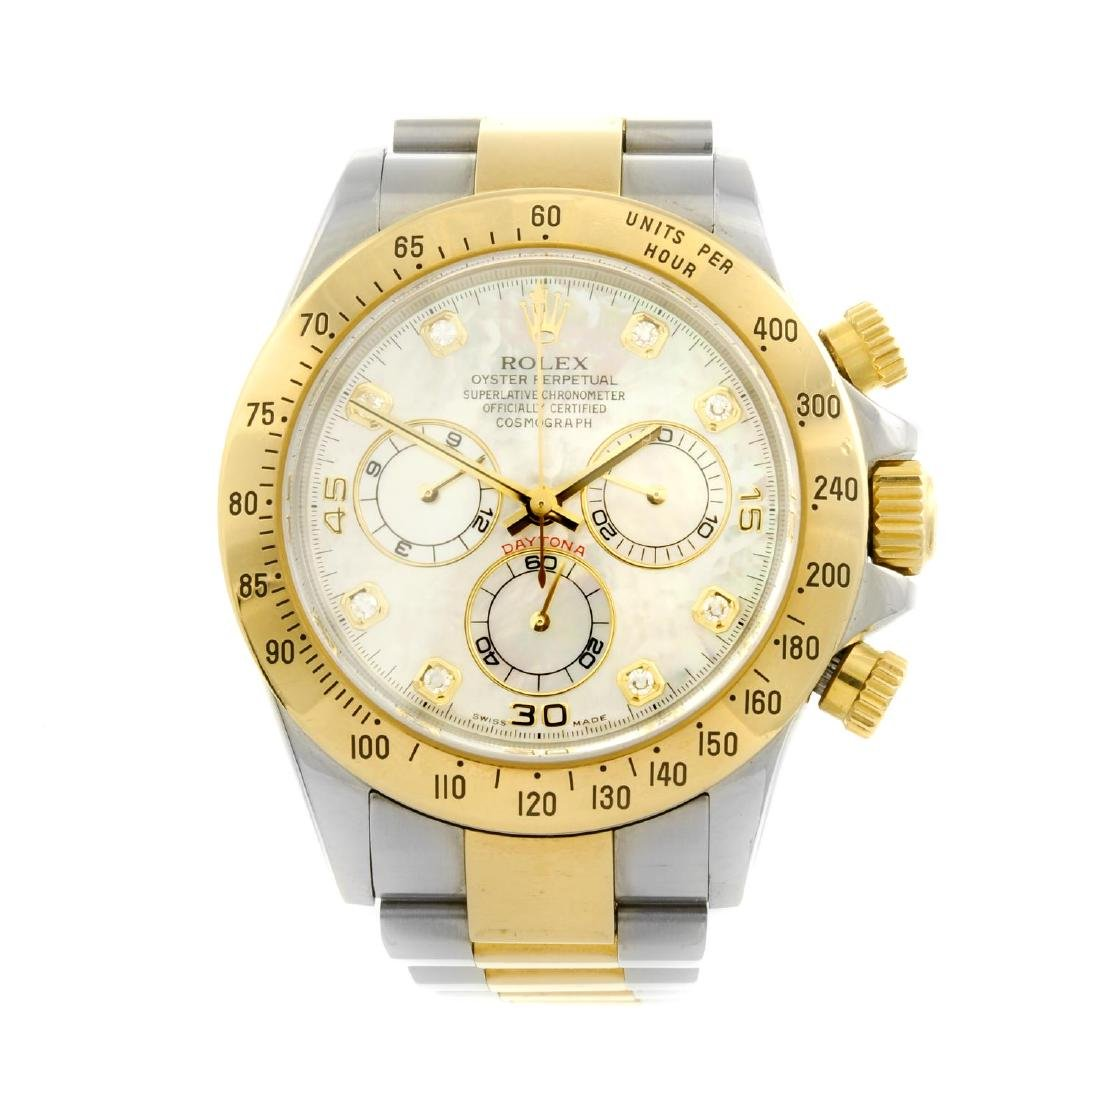 ROLEX - a gentleman's Oyster Perpetual Cosmograph